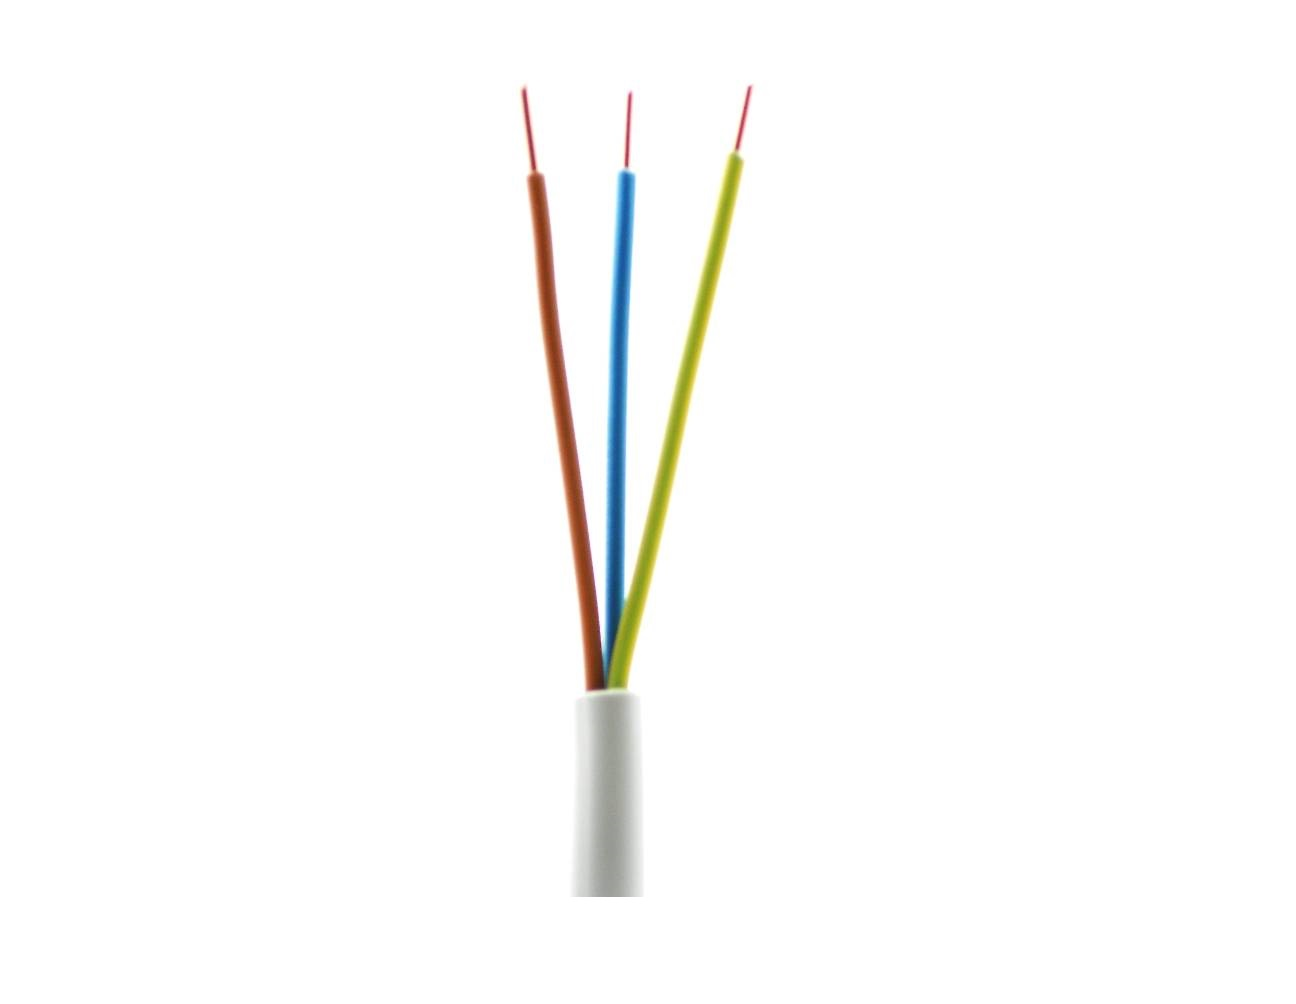 3 x 6mm NYM-J Industrial Electrical Cable (Per 1mtr) 36NYM